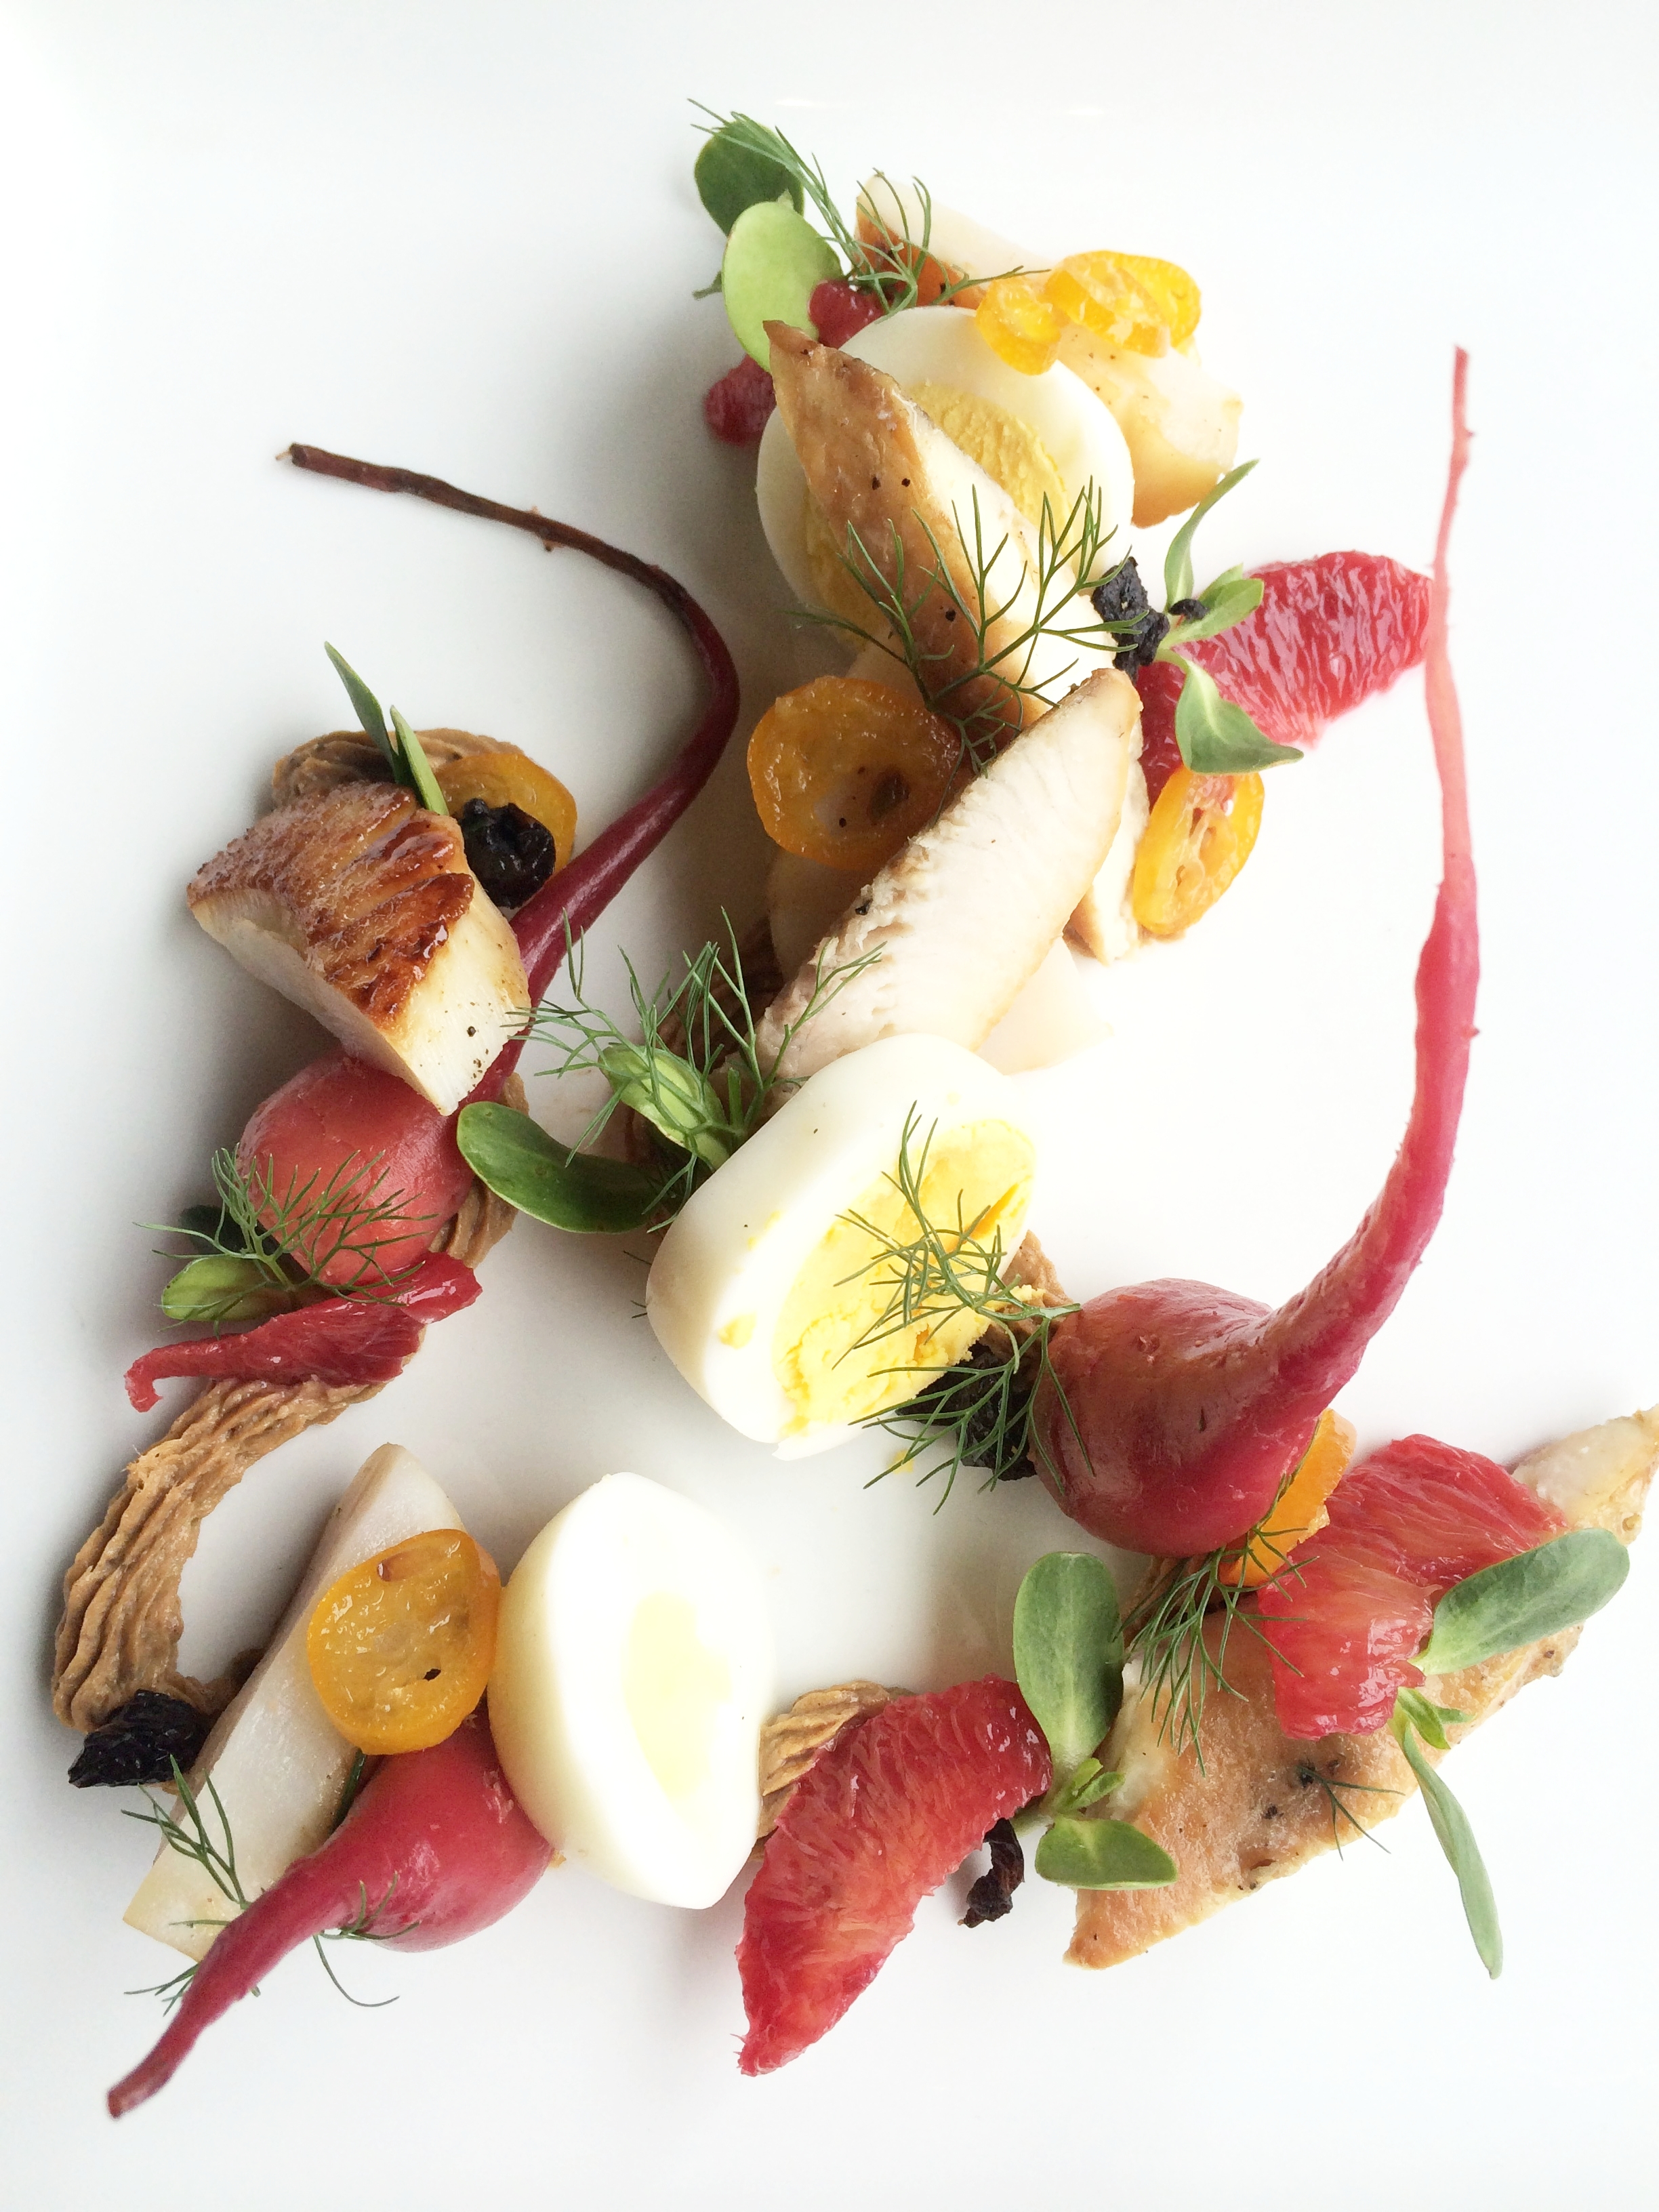 Chicken Liver Pate, Smoked Sturgeon, Hard Cooked Egg, Pickled Beets